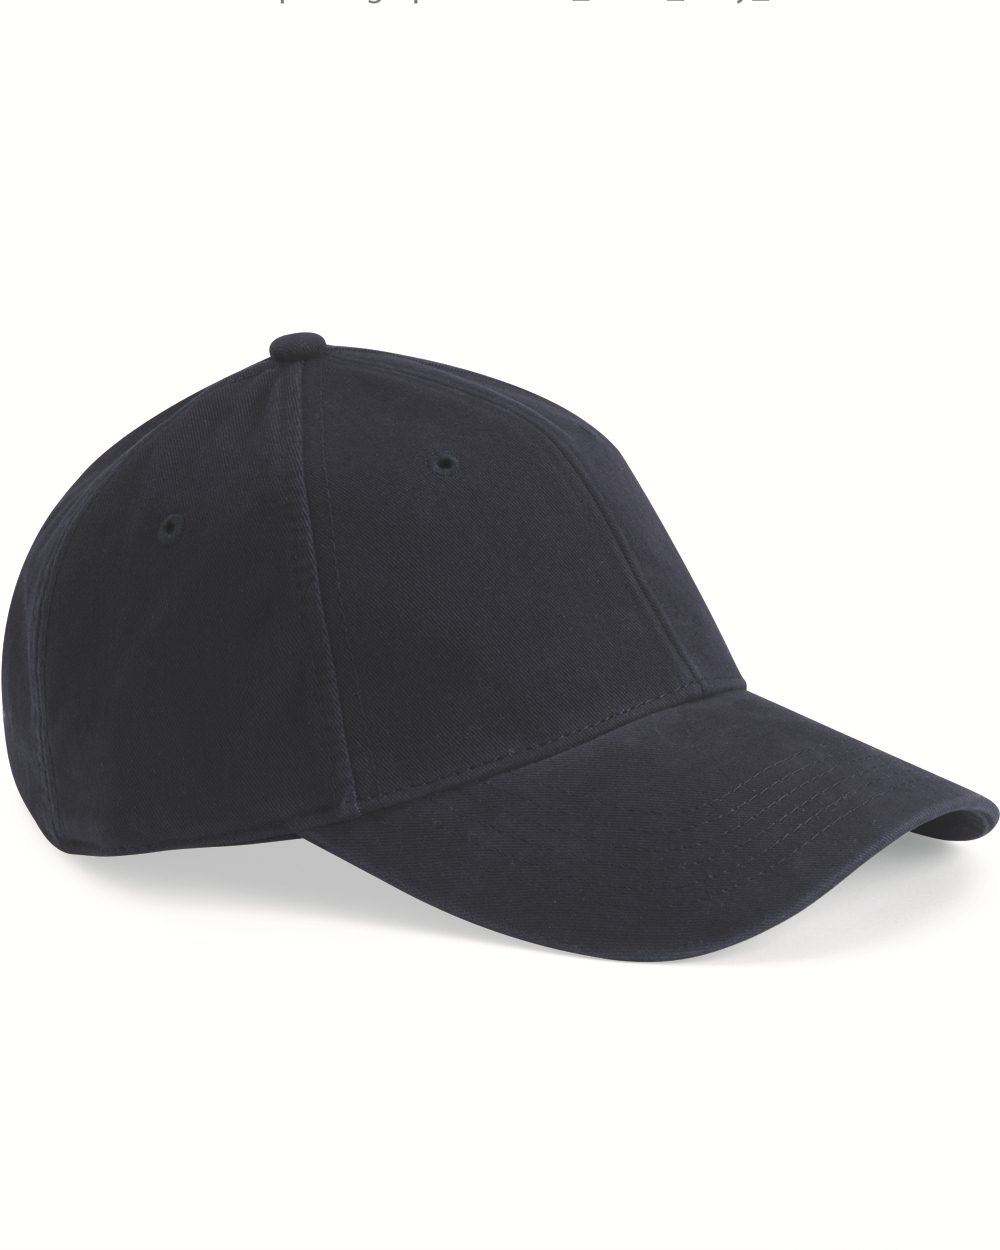 Authentic Headwear AH30 The Classic Structured Cap